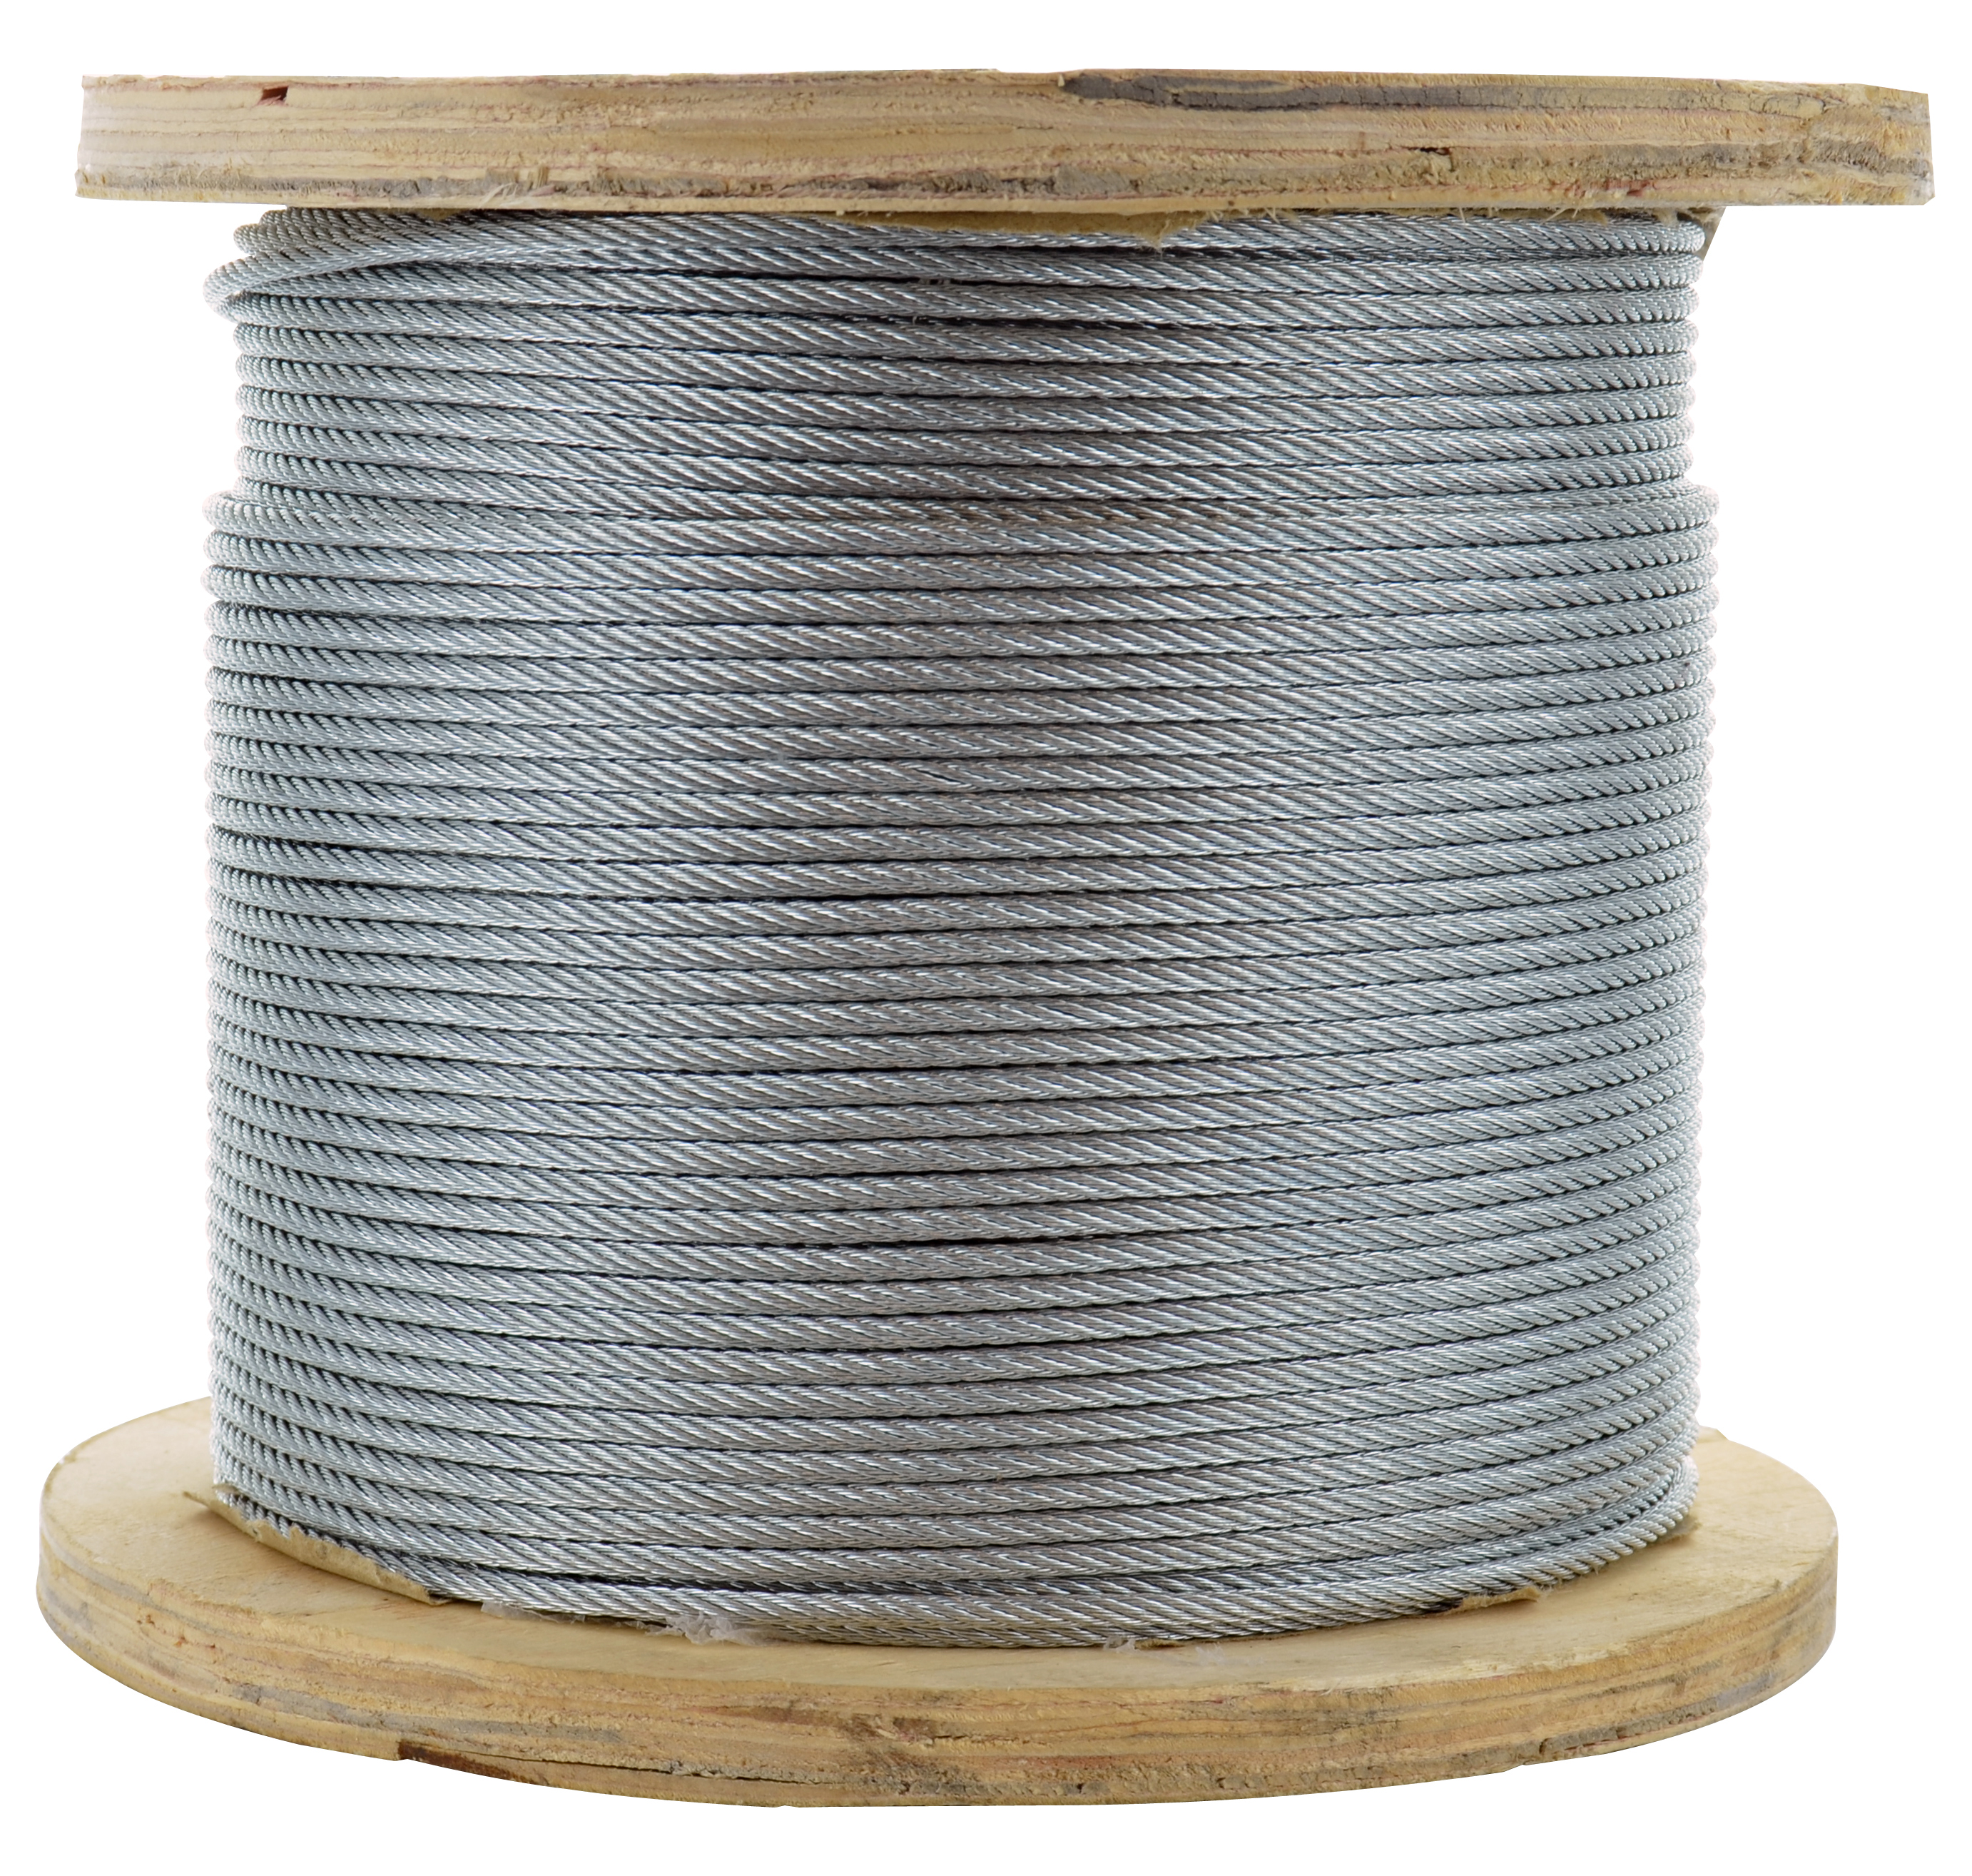 "250 ft Reel 7x19 3//8/"" 304 Stainless Steel Cable"